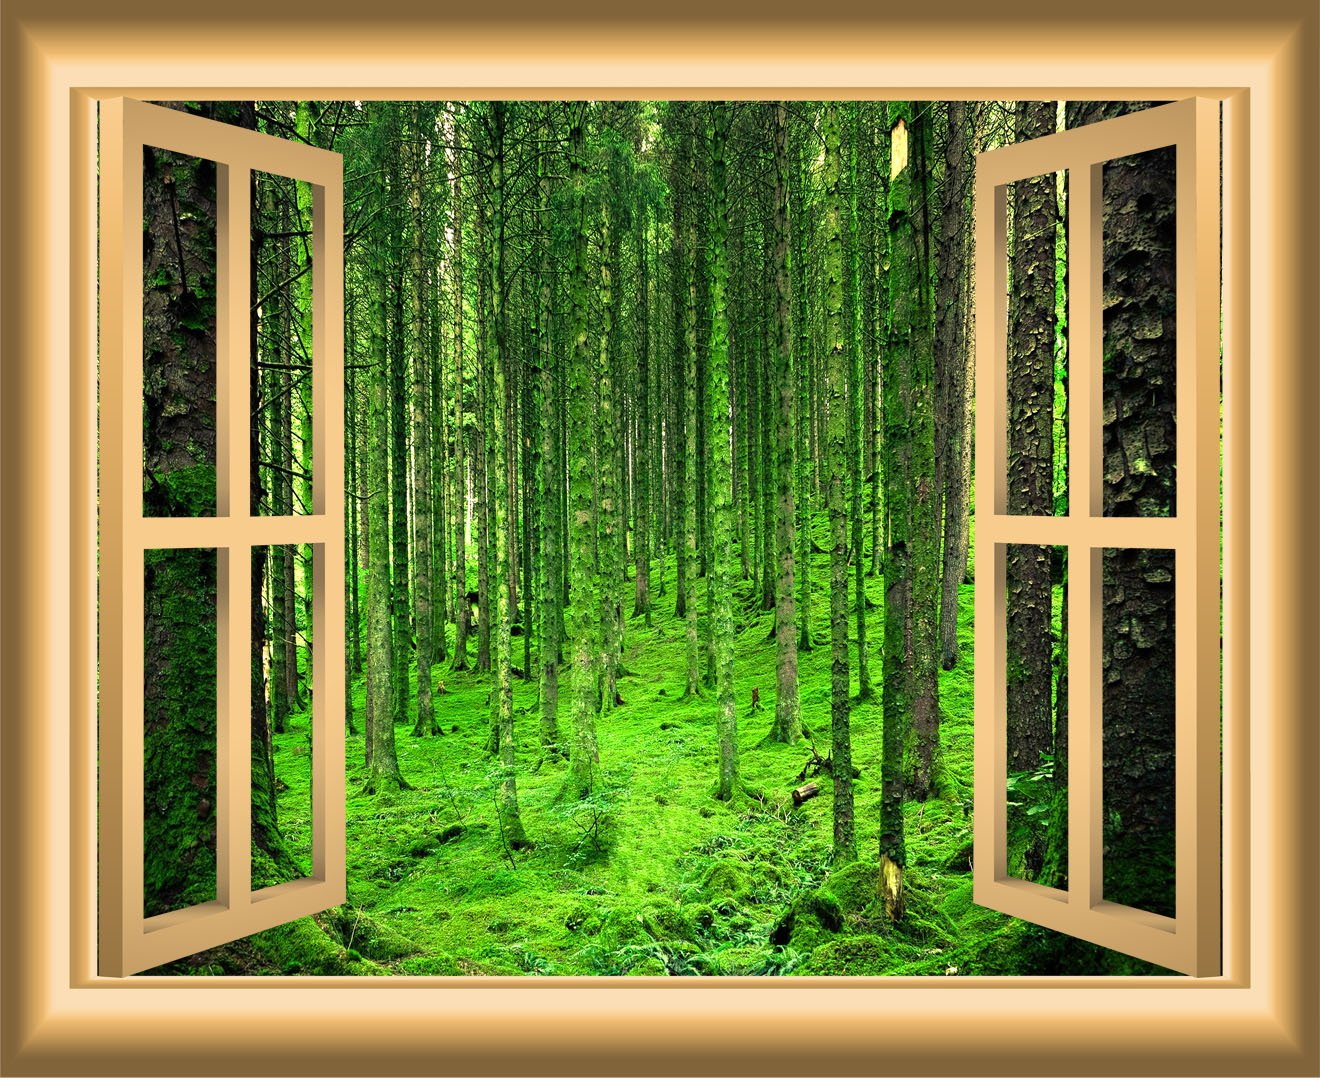 3D Window Wall Decals Forest Nature Scene Removable Wall Art - NW48 - VWAQ Vinyl Wall Art Quotes and Prints